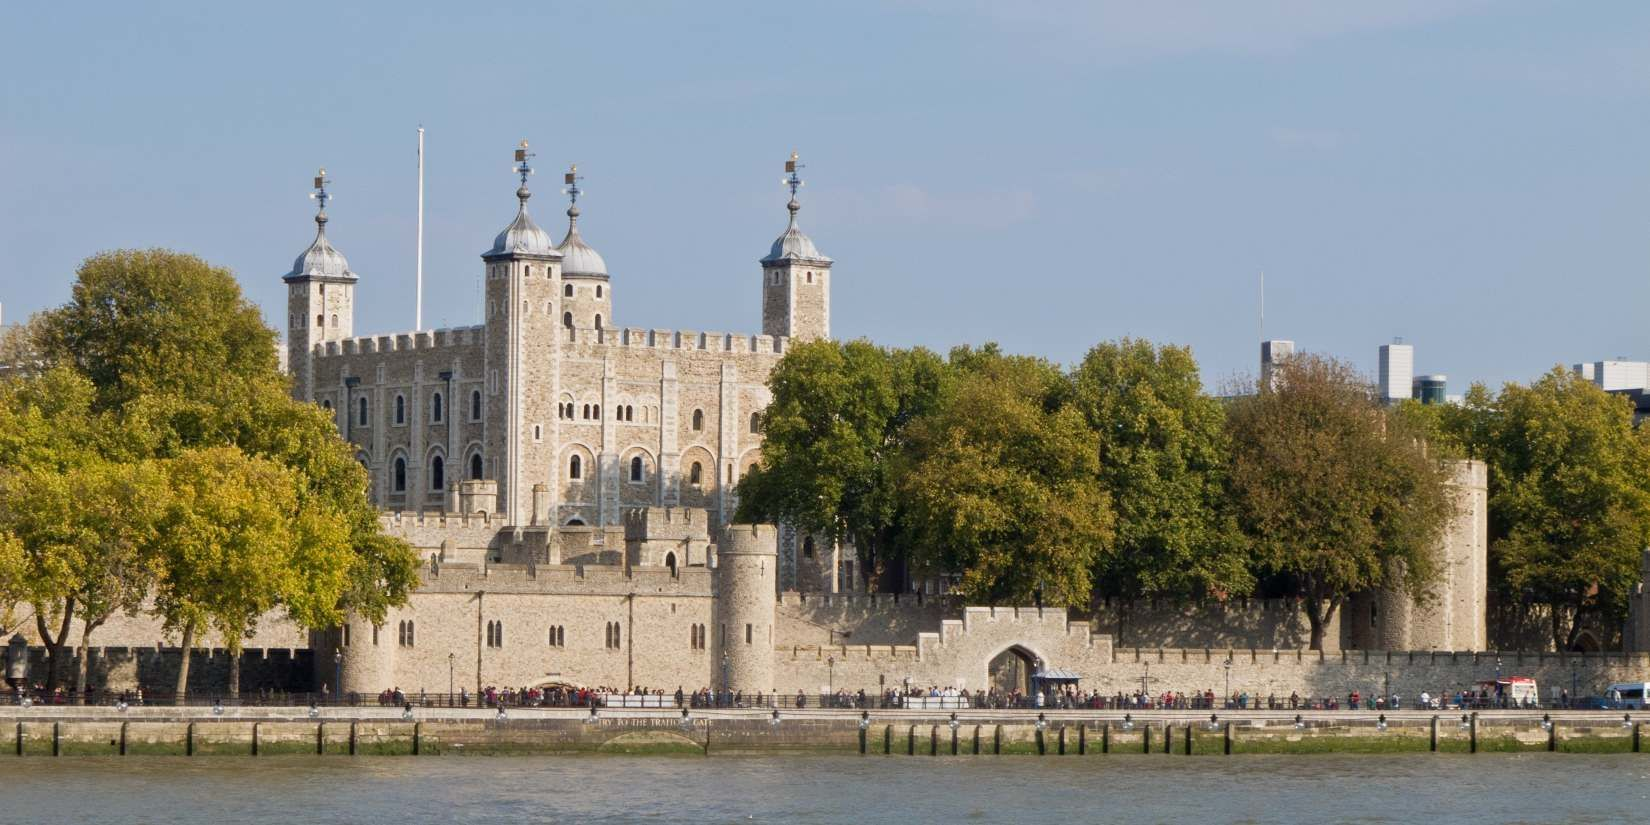 London Tower Of London Guide Audio - download.cnet.com